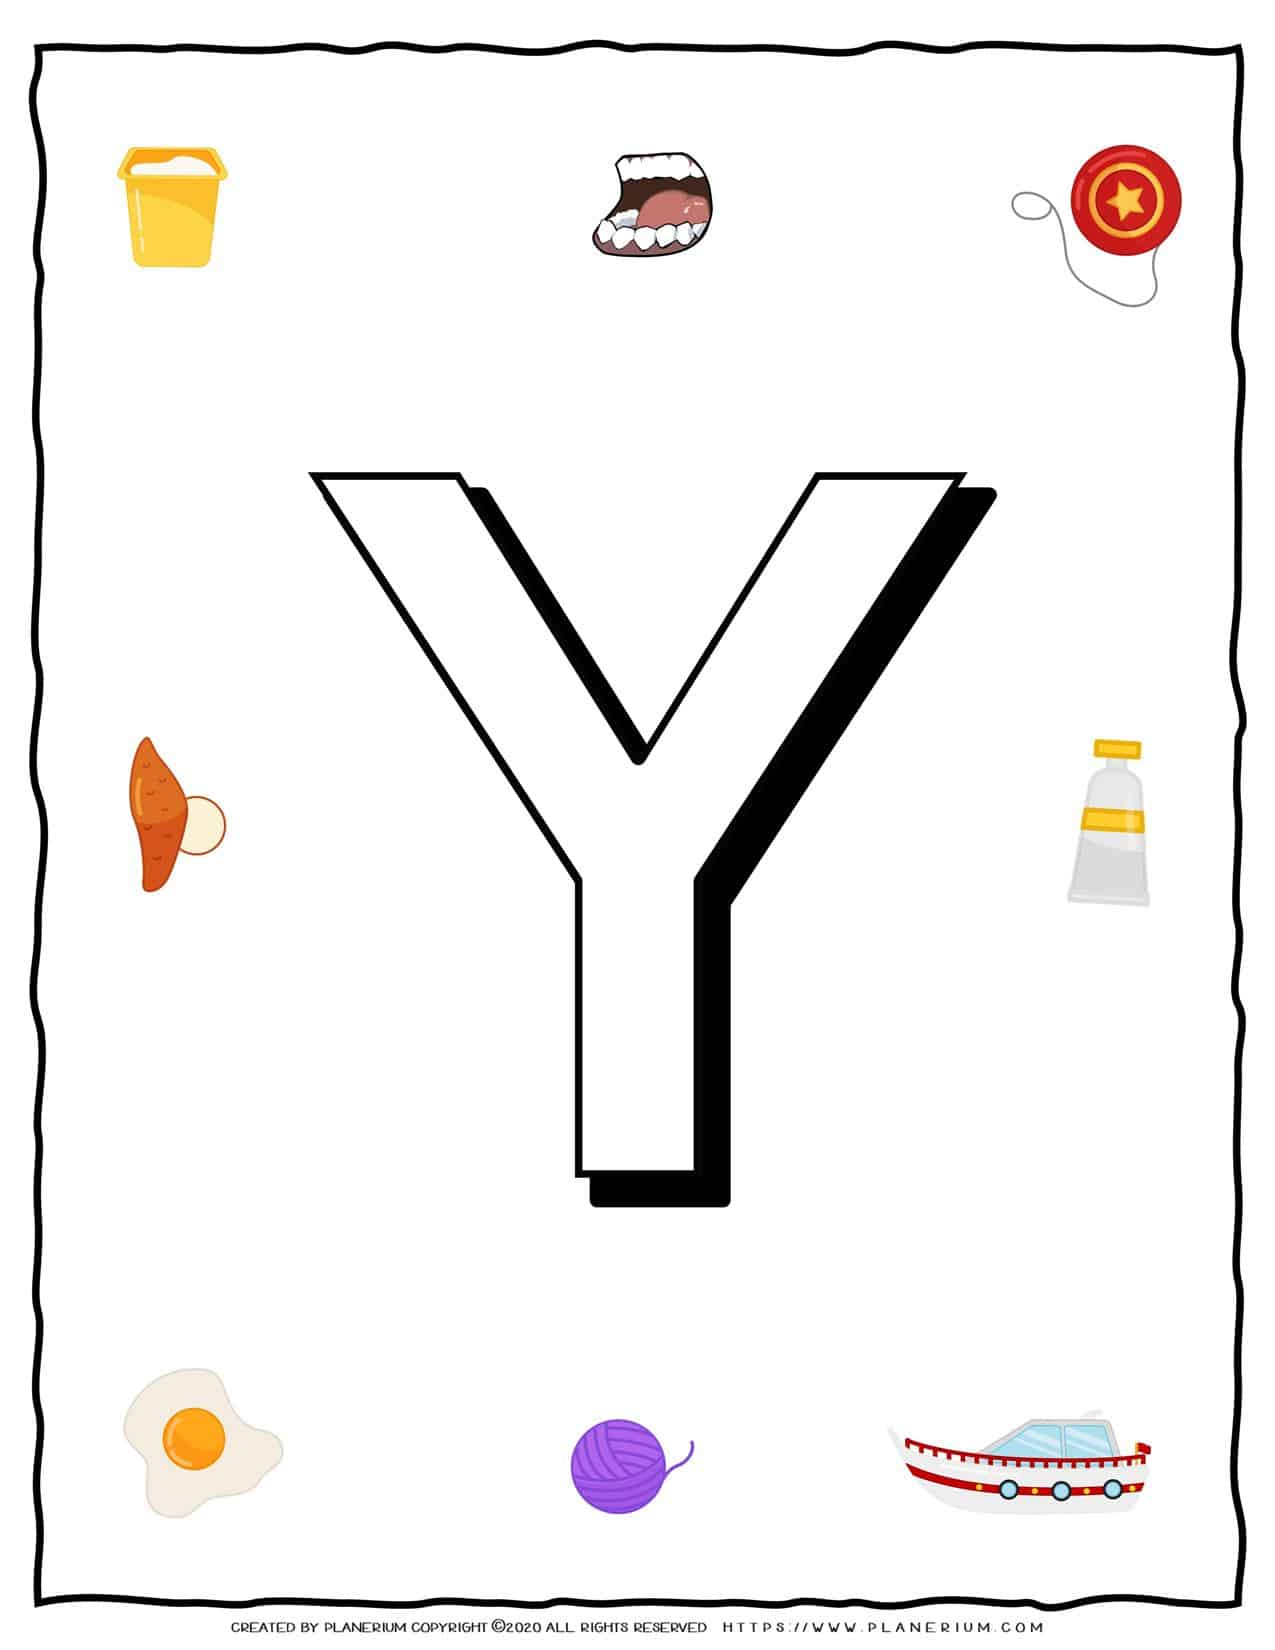 English Alphabet - Objects that starts with Y   Planerium